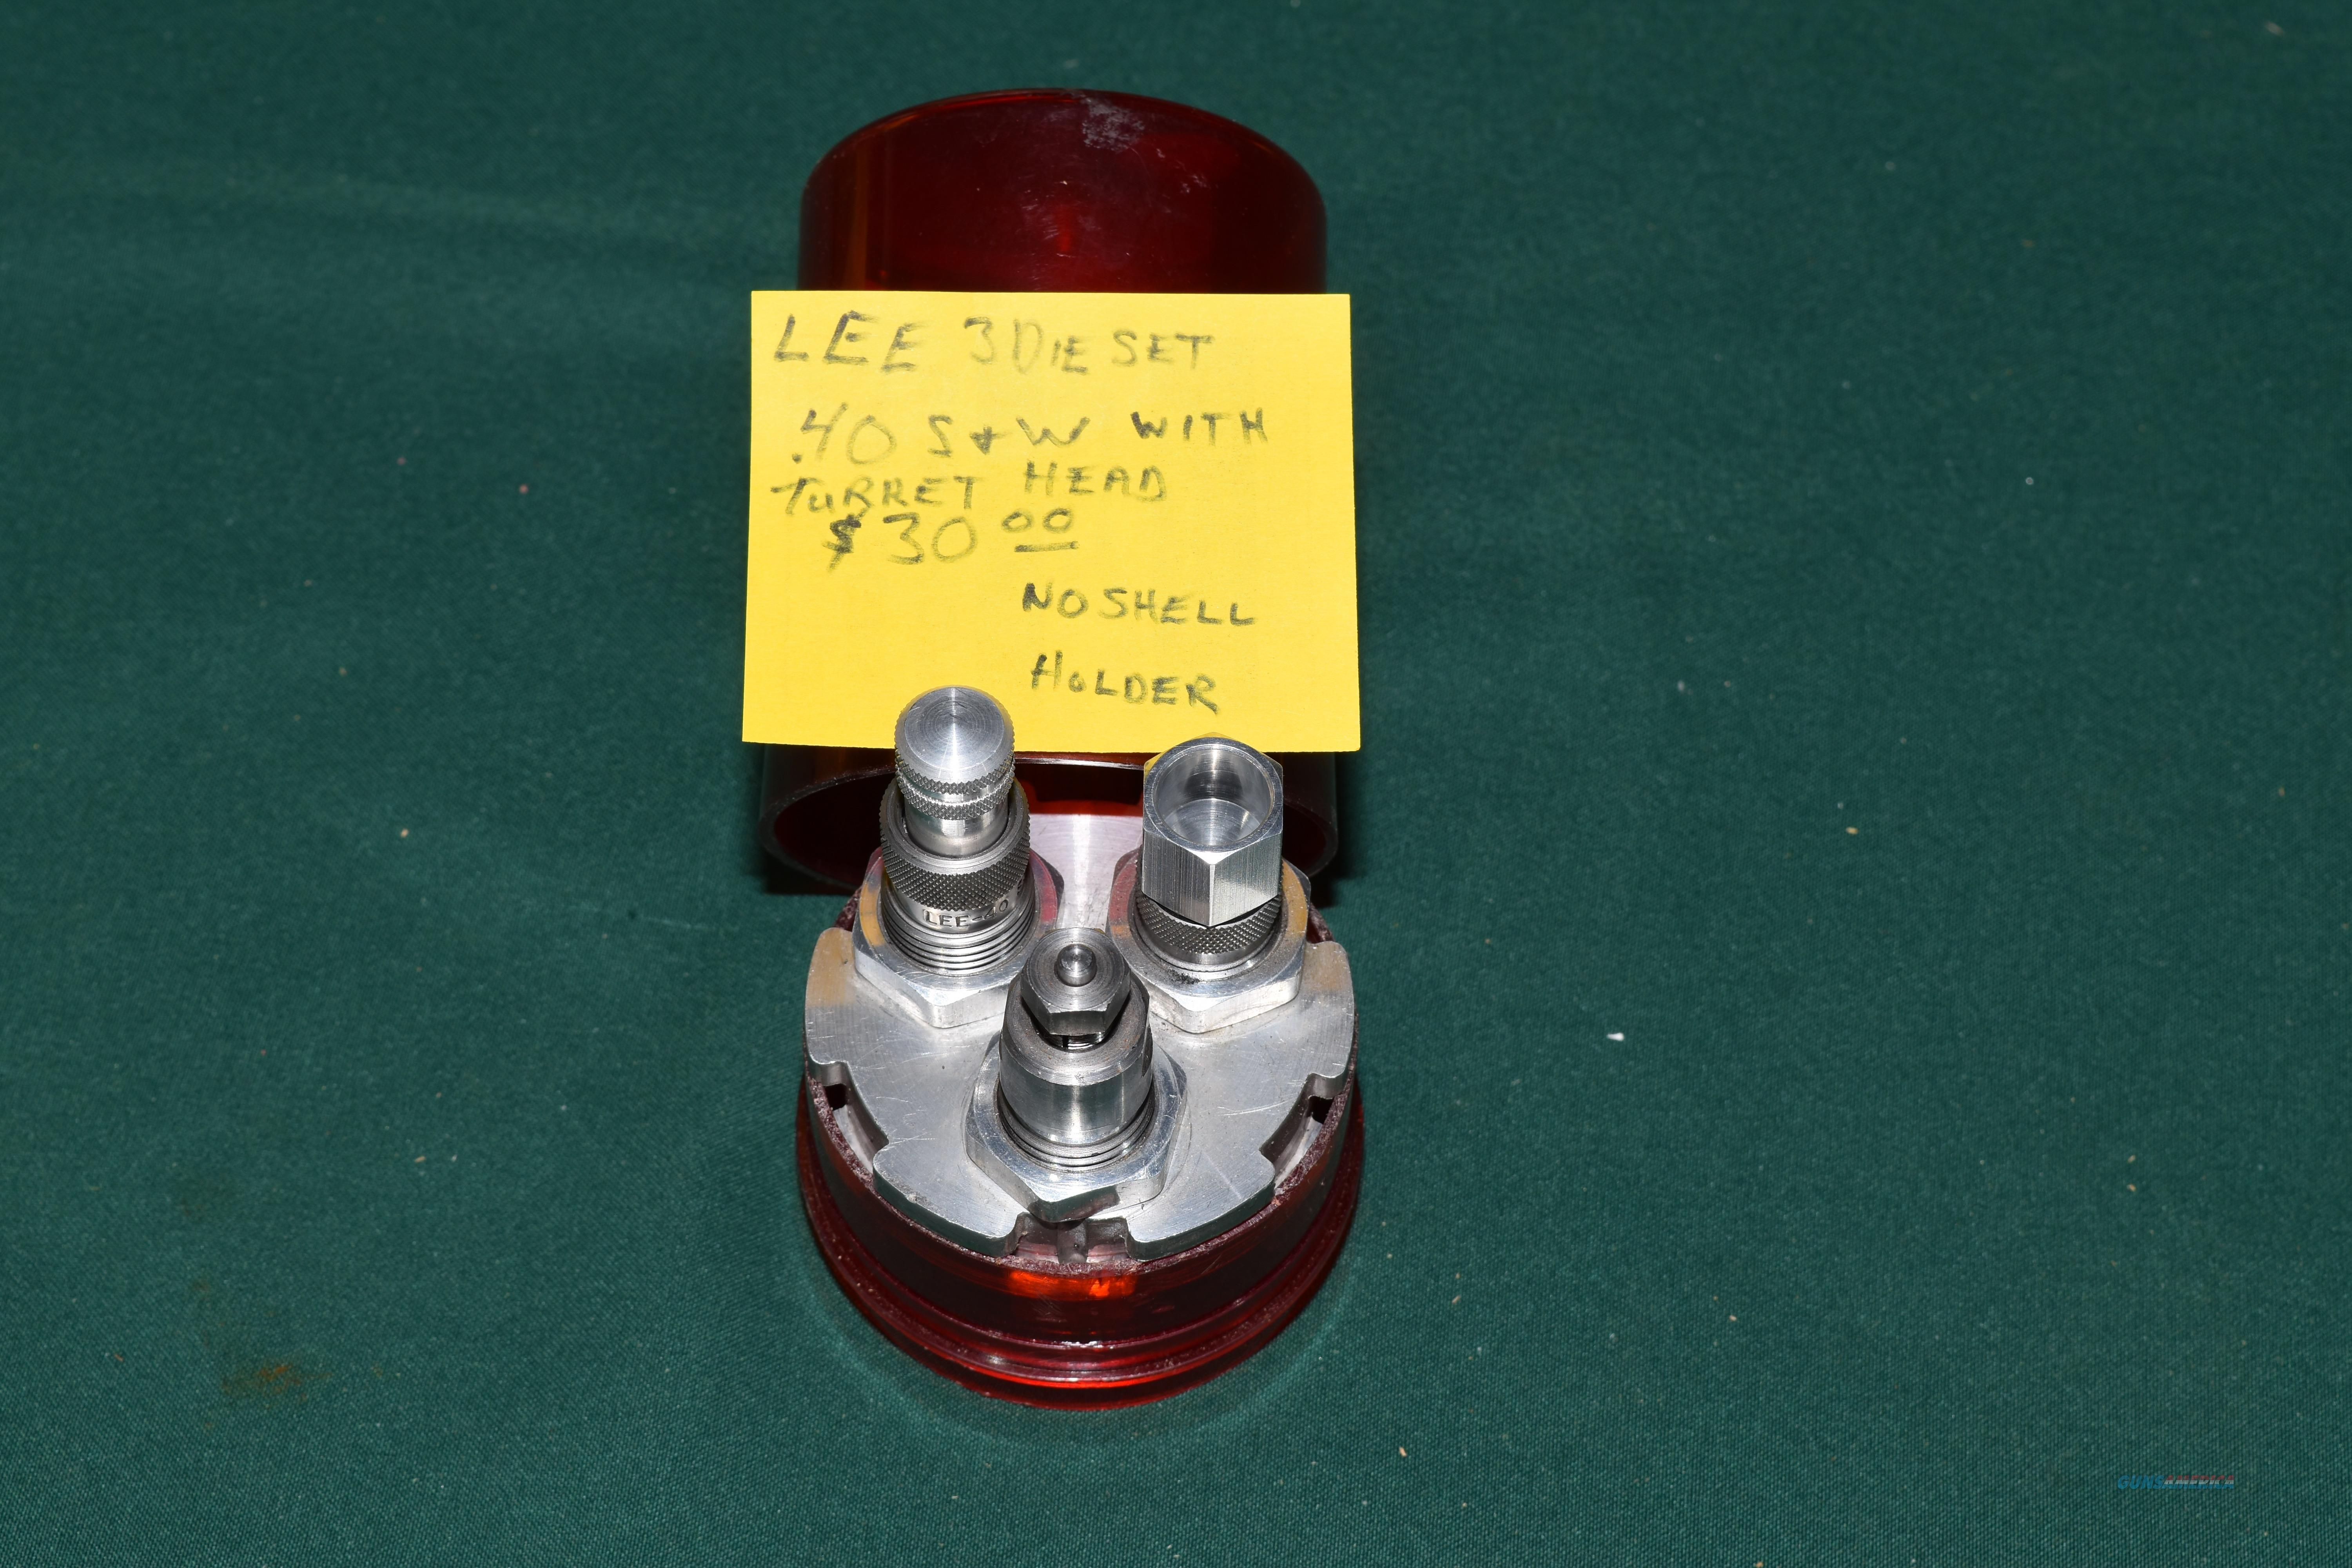 Lee 3 Die set in .40 S&W with Turret head BUYER PAYS SHIPPING  from z.c. 89448  Non-Guns > Reloading > Equipment > Metallic > Dies